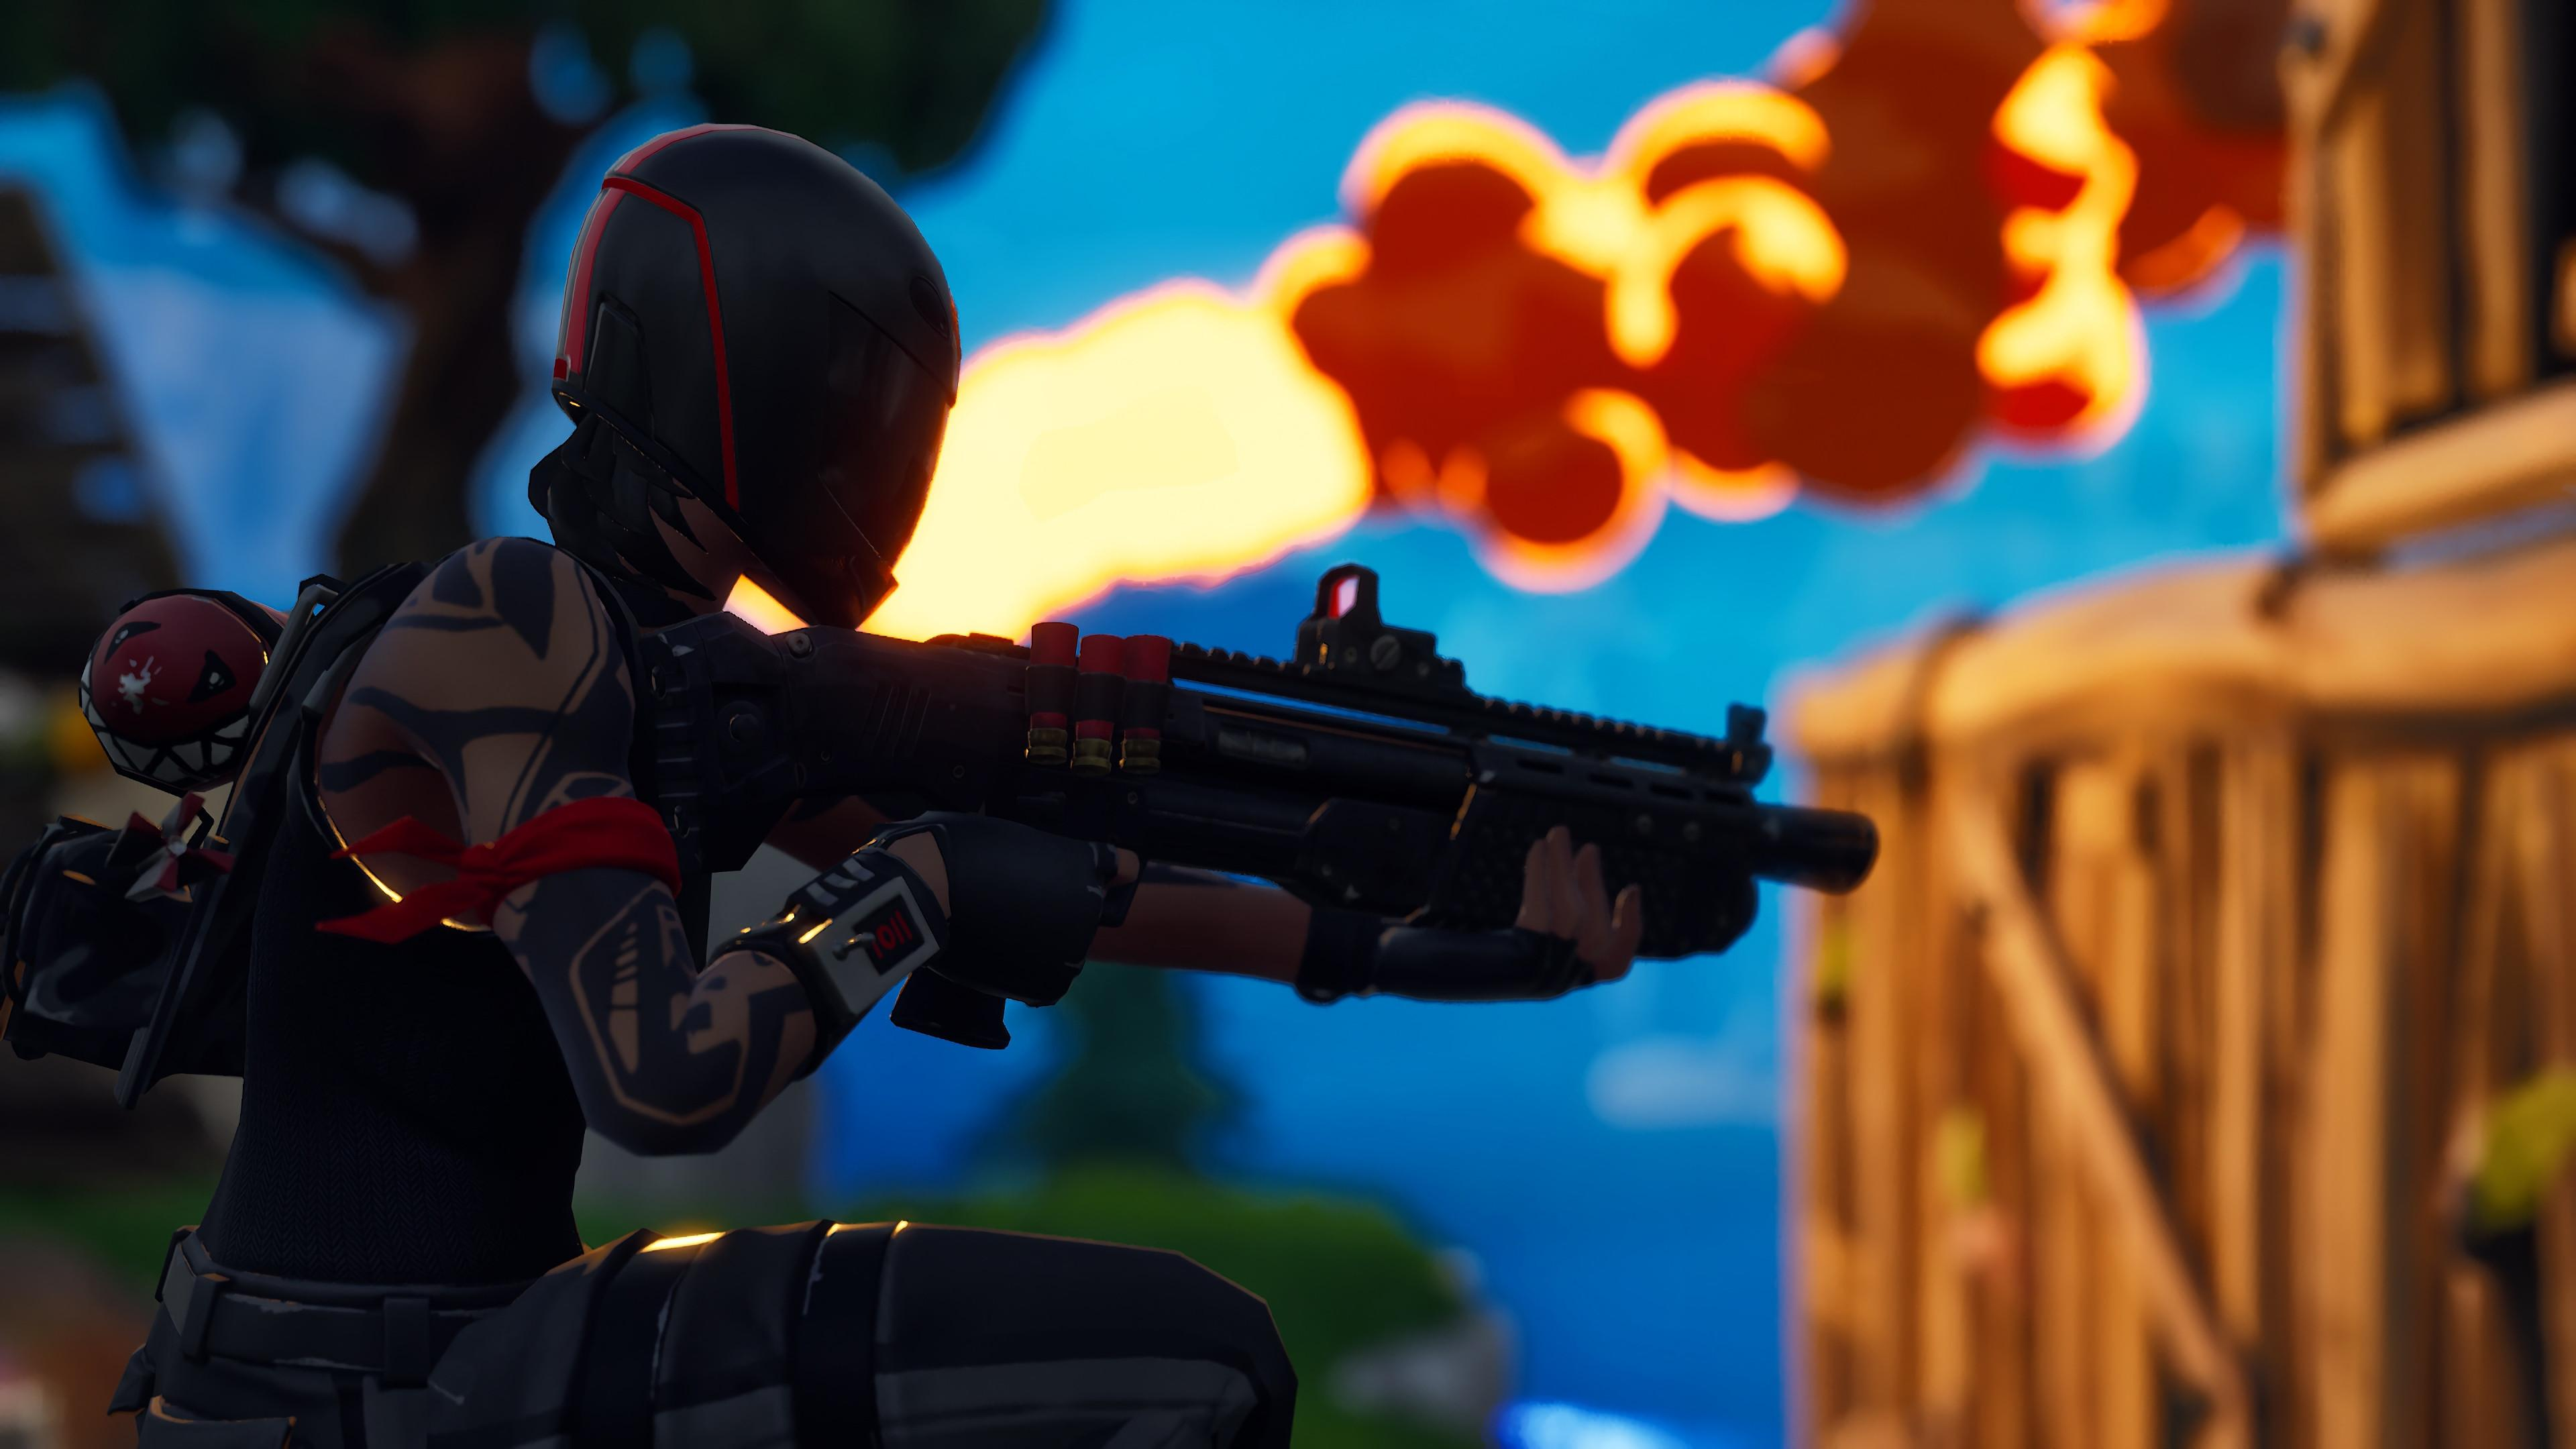 Redline 4K 8K HD Fortnite Battle Royale Wallpaper